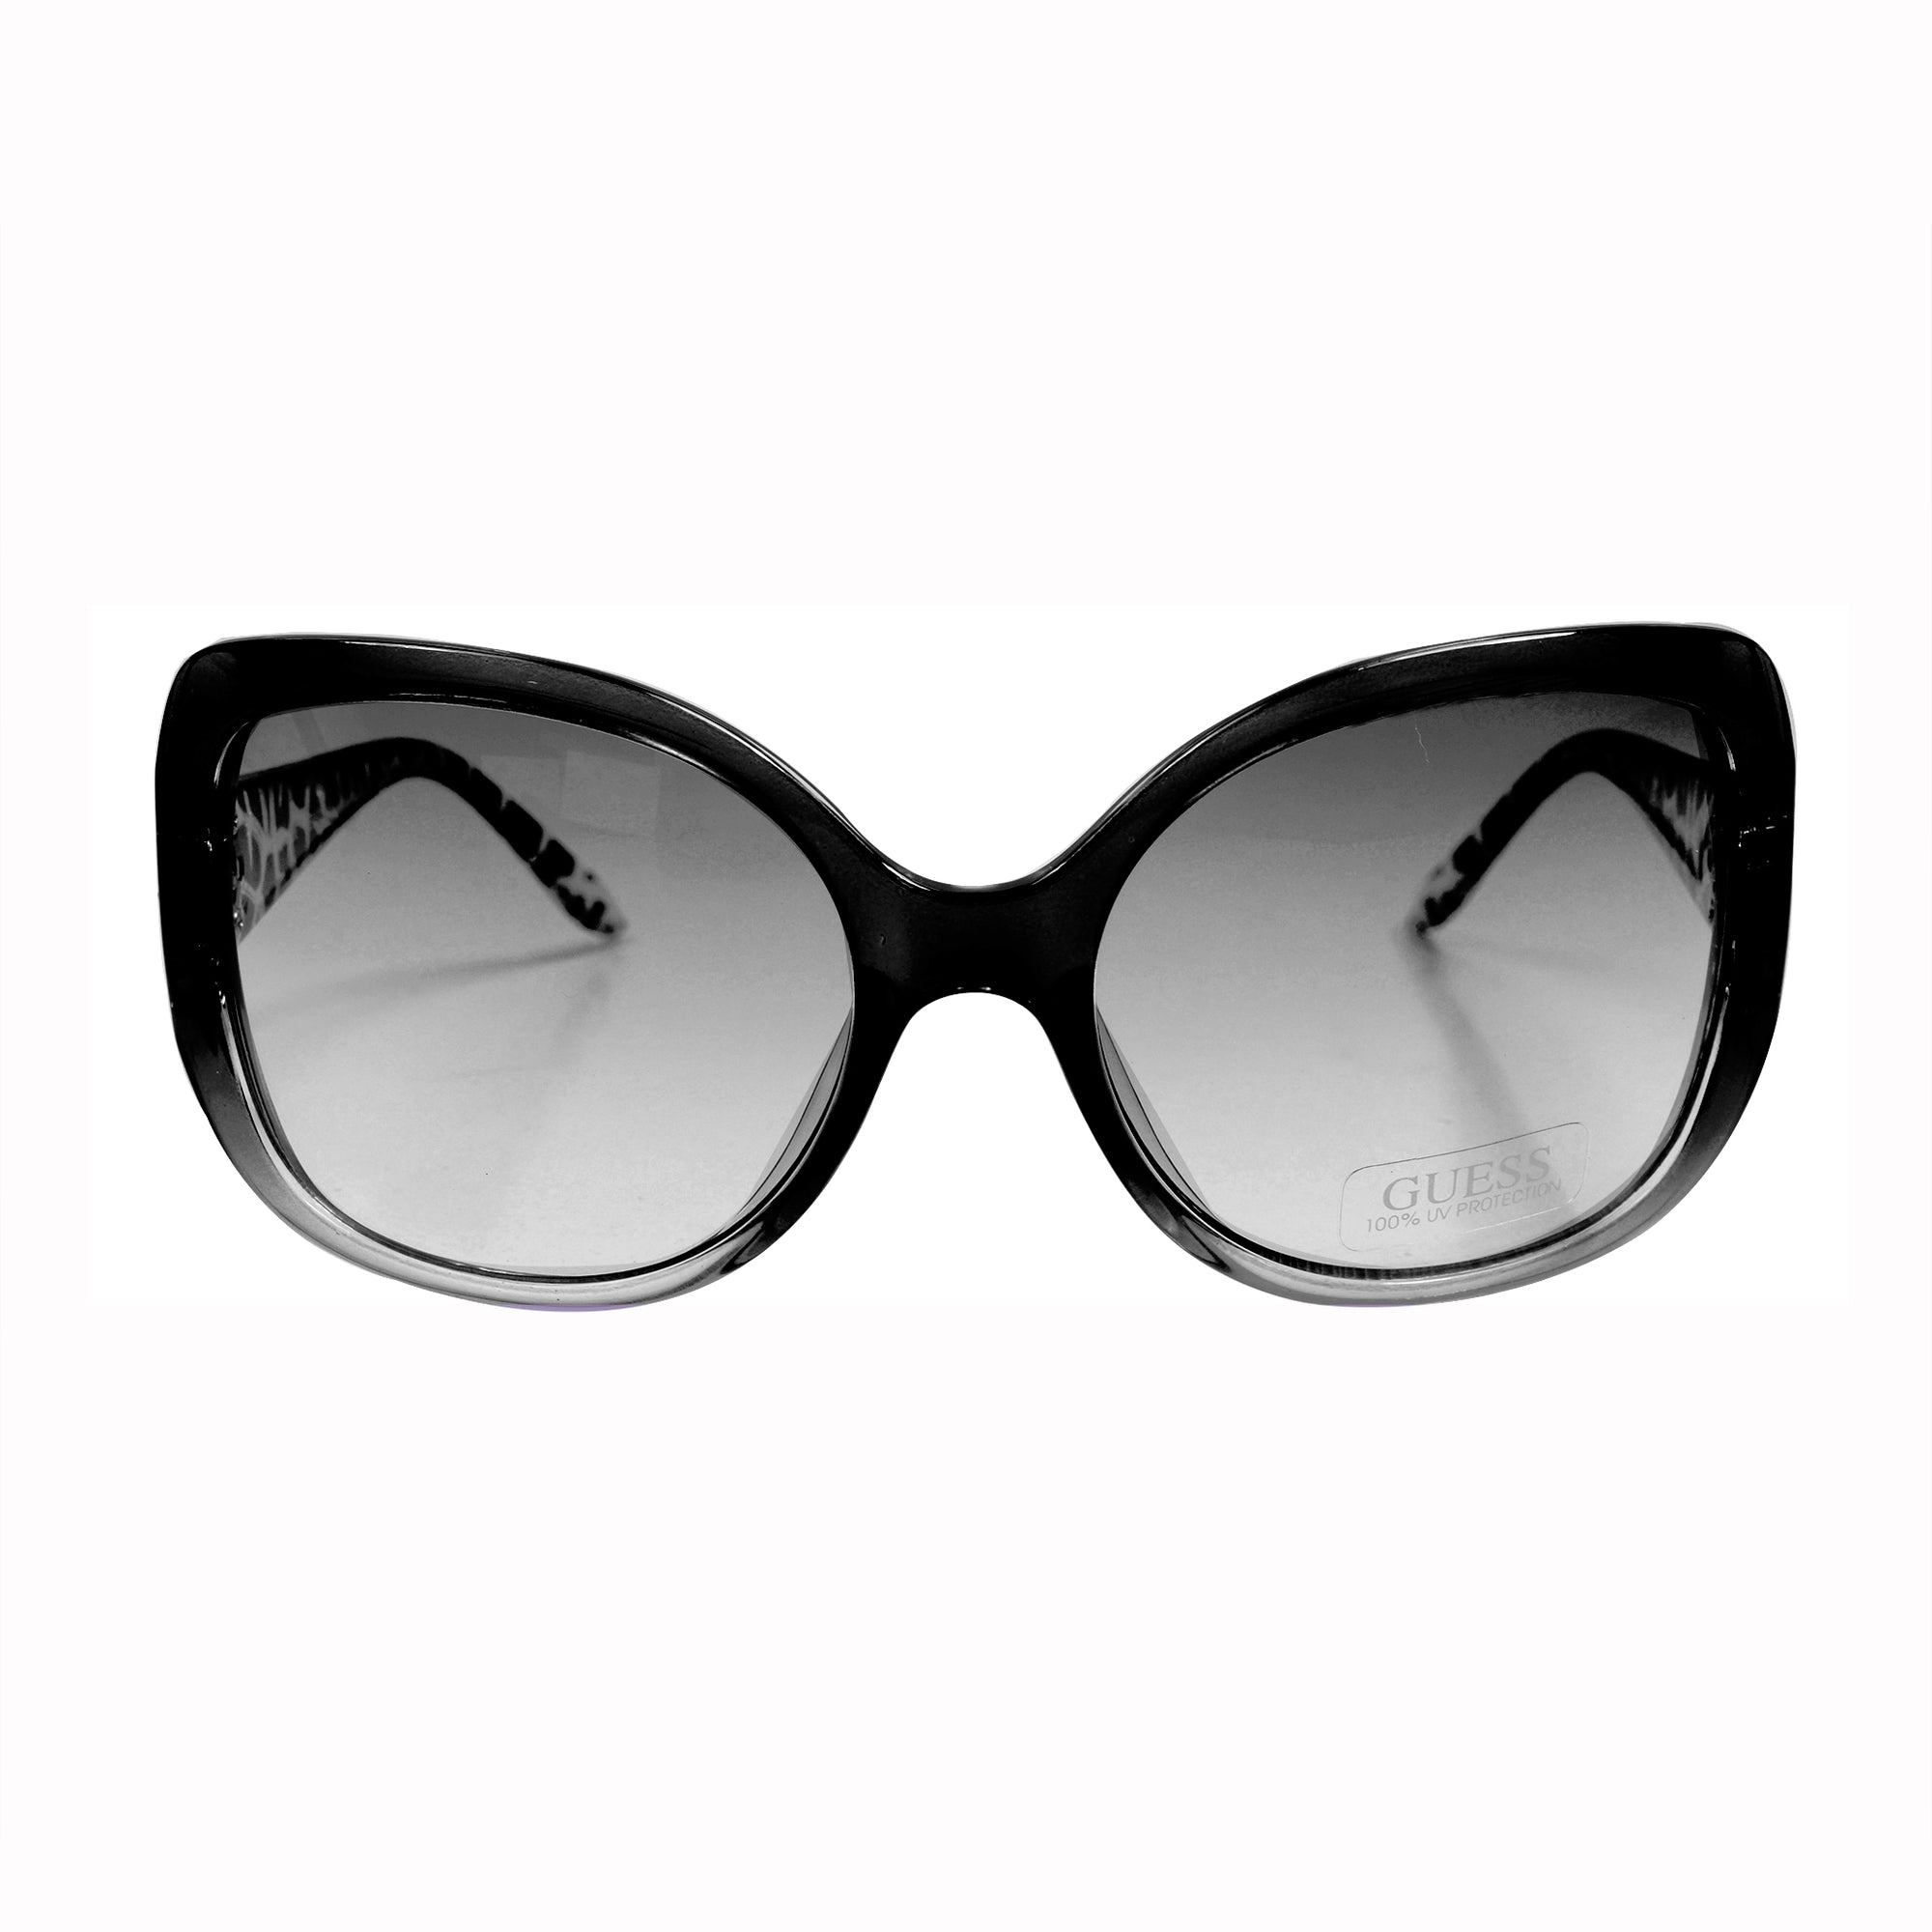 Guess  Black Sunglasses For Women-SK0137